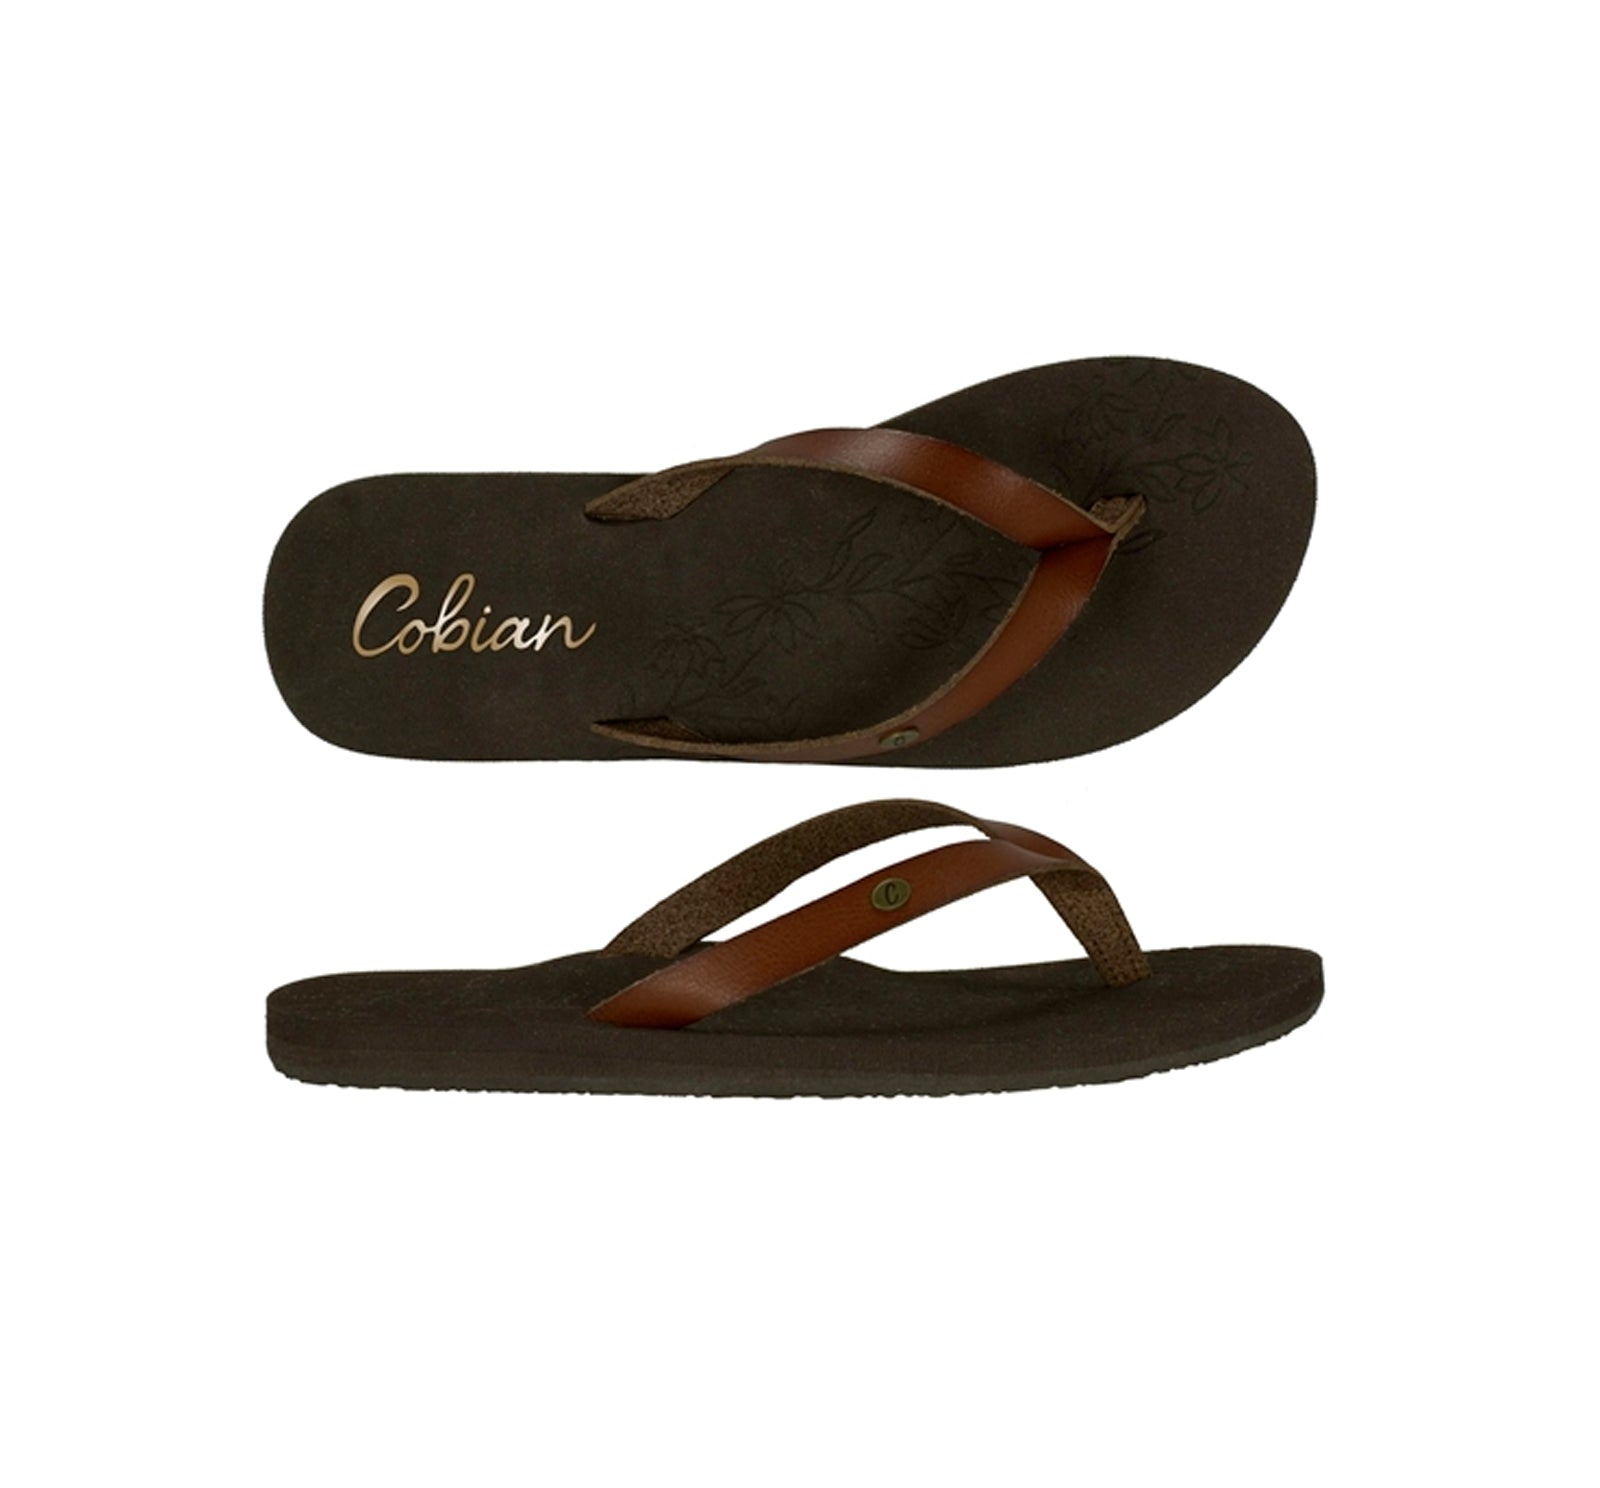 Cobian La Playita Women's Sandals